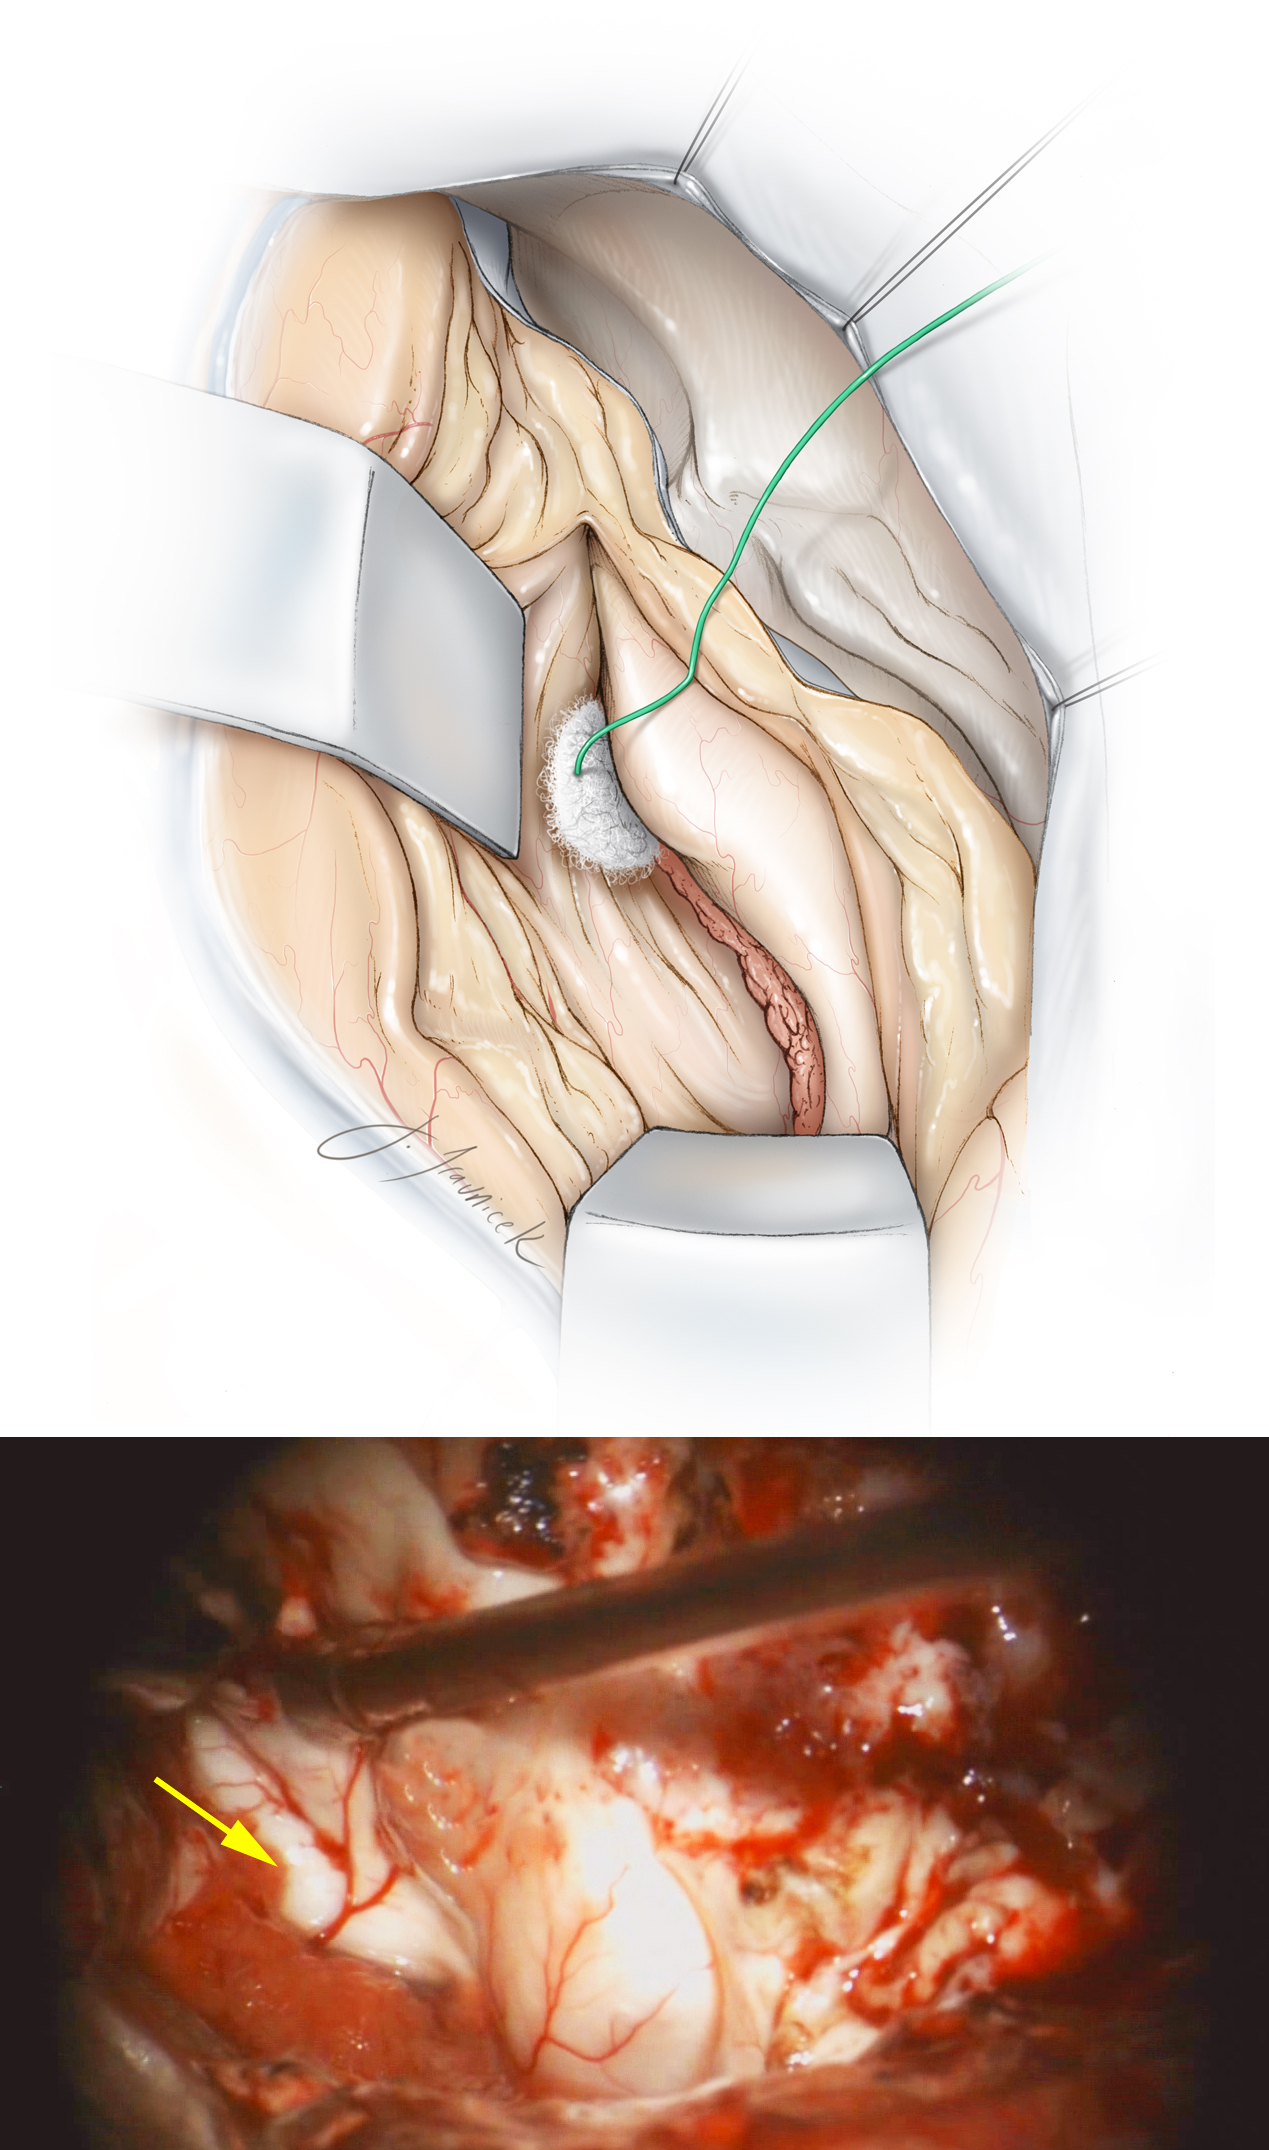 Figure 15: My colleagues prefer to use two fixed retractor blades, one to support the superior temporal gyrus, and the second on the cut surface of the posterior plane of resection. One retractor elevates the roof of the temporal horn and allows identification of the choroid plexus and hippocampal structures. The second retractor blade mobilizes the remainder of the temporal neocortex laterally. A small cottonoid pledget is placed into the temporal horn and at the anterior edge of the choroid plexus so that the inferior choroidal point is easily identified. Another pledget is placed at the tail of the temporal horn to prevent blood from entering the rest of the ventricular system. The yellow arrow identifies the uncinate fasciculus and the intralimbic lobe of the parahippocampus just underneath the choroid plexus.